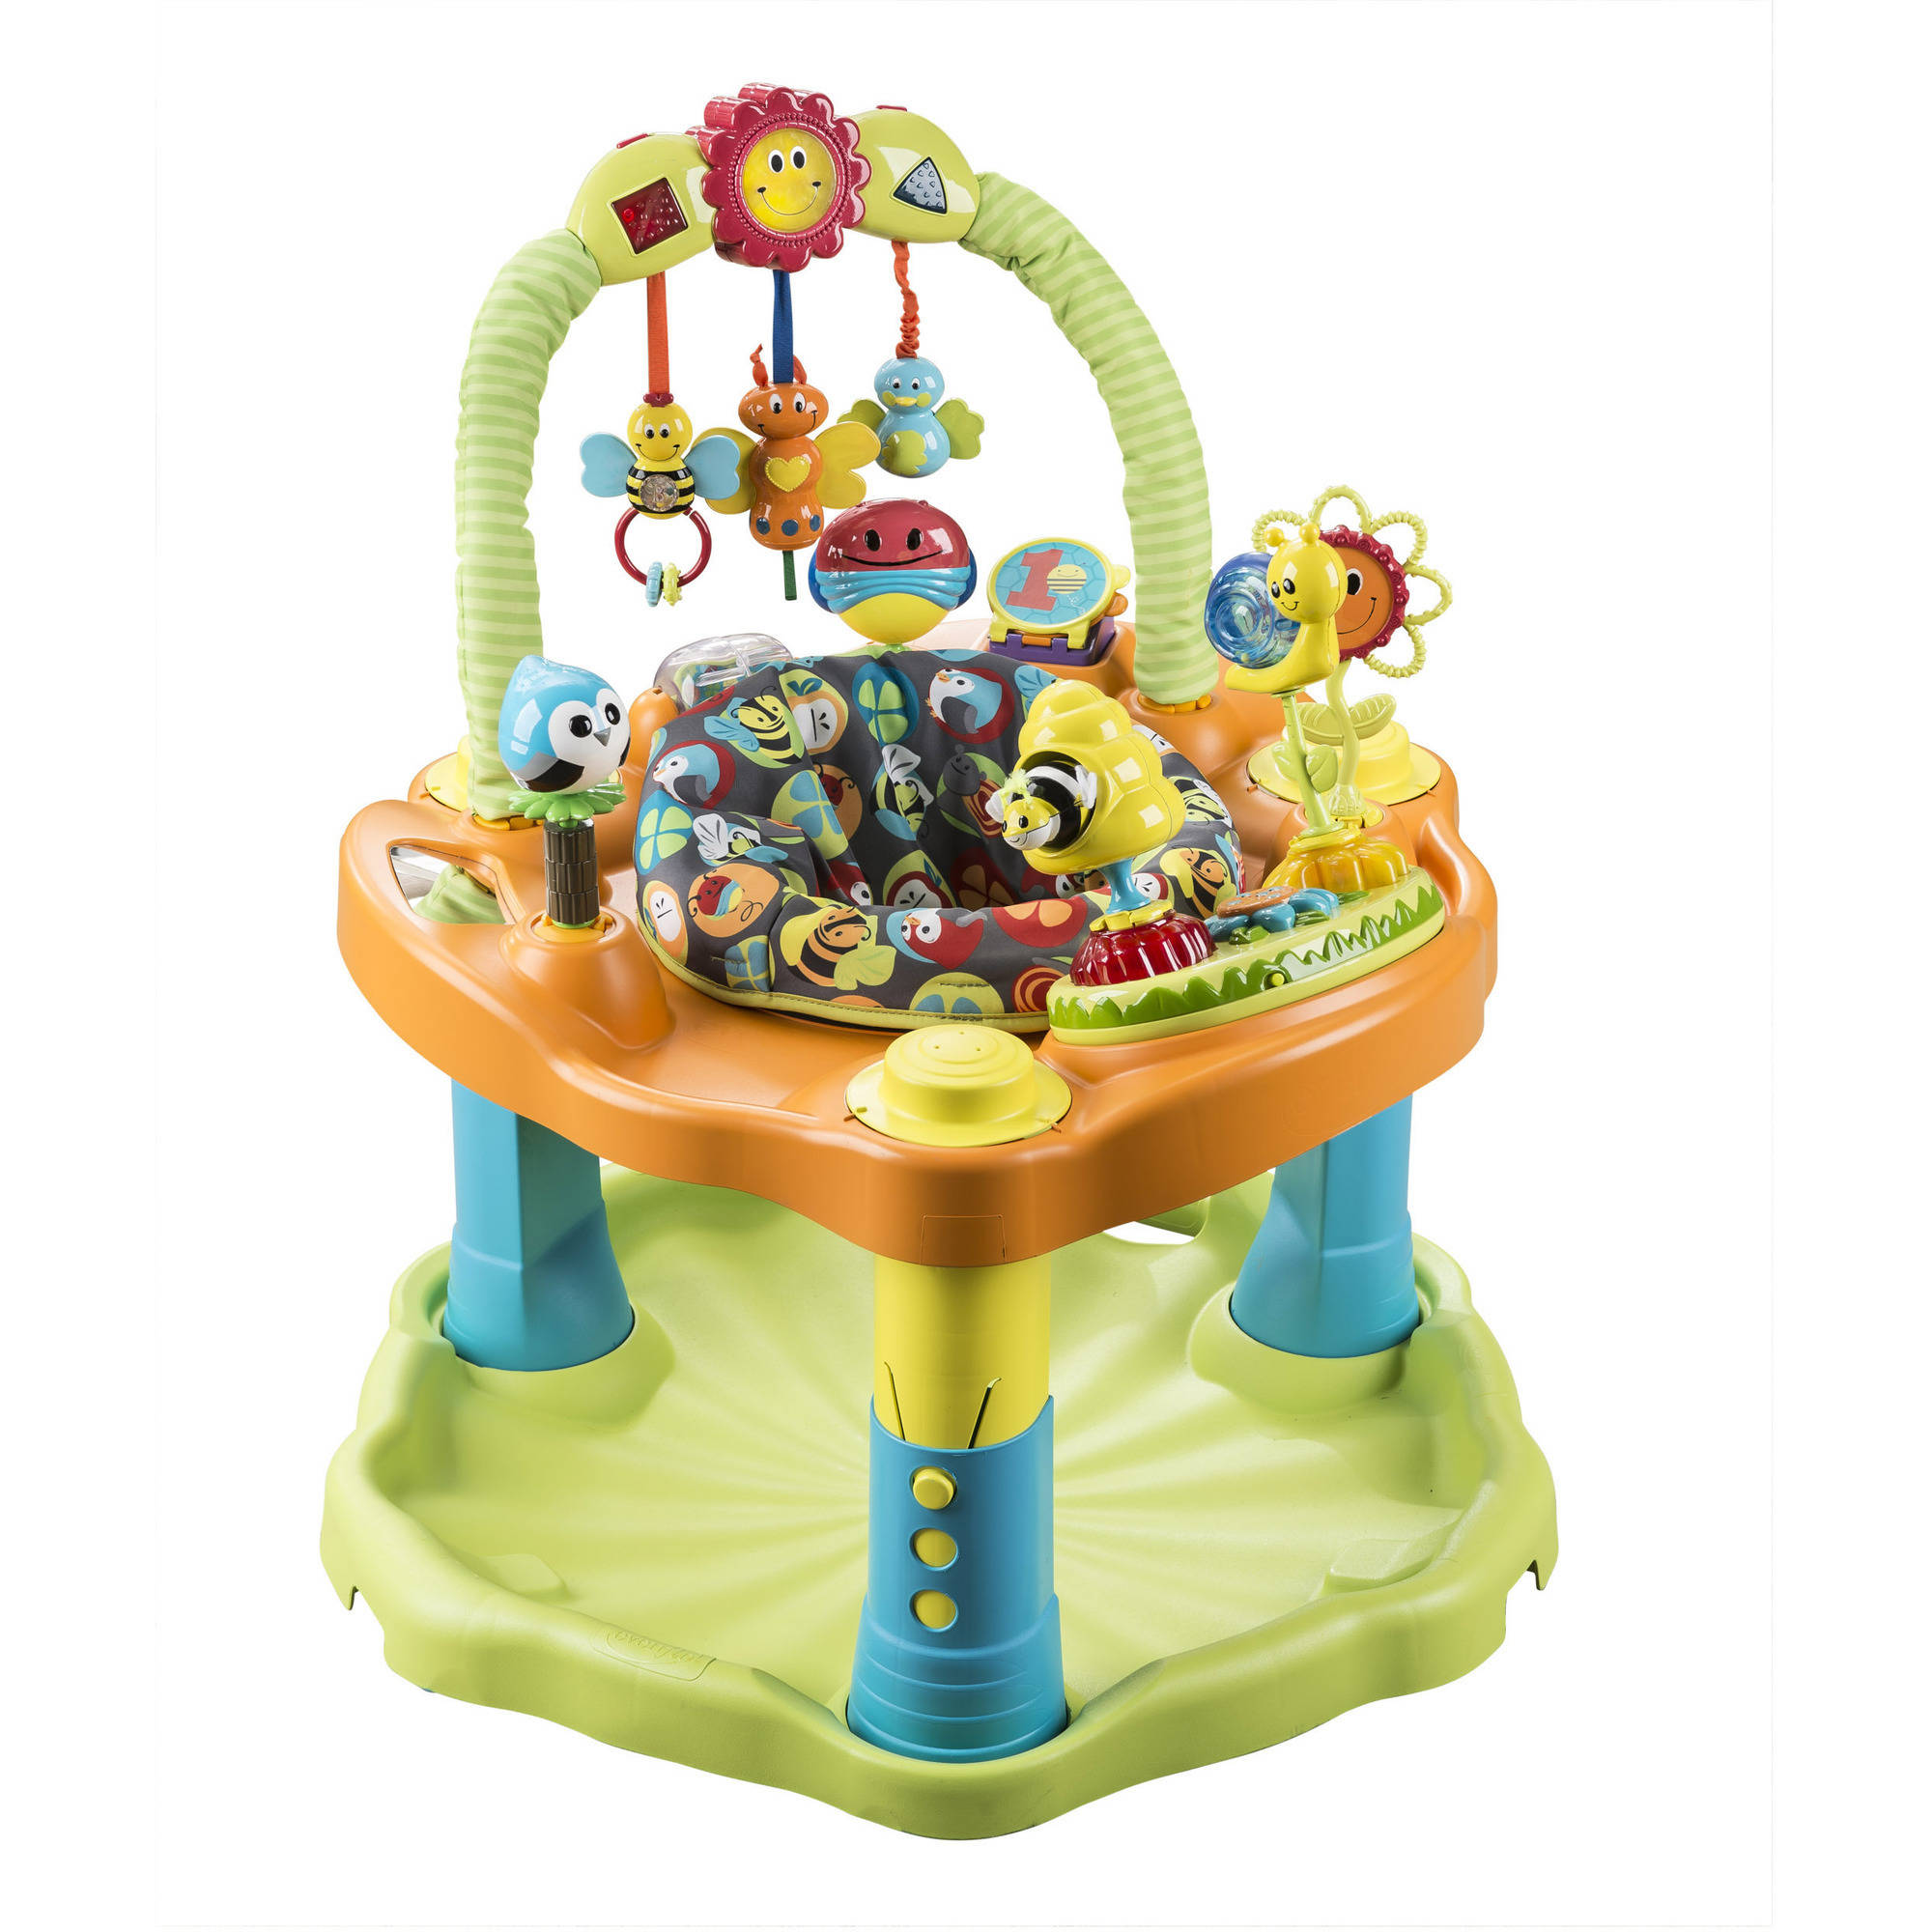 Evenflo Exersaucer Double Fun Bouncing Activity Saucer, Bumbly